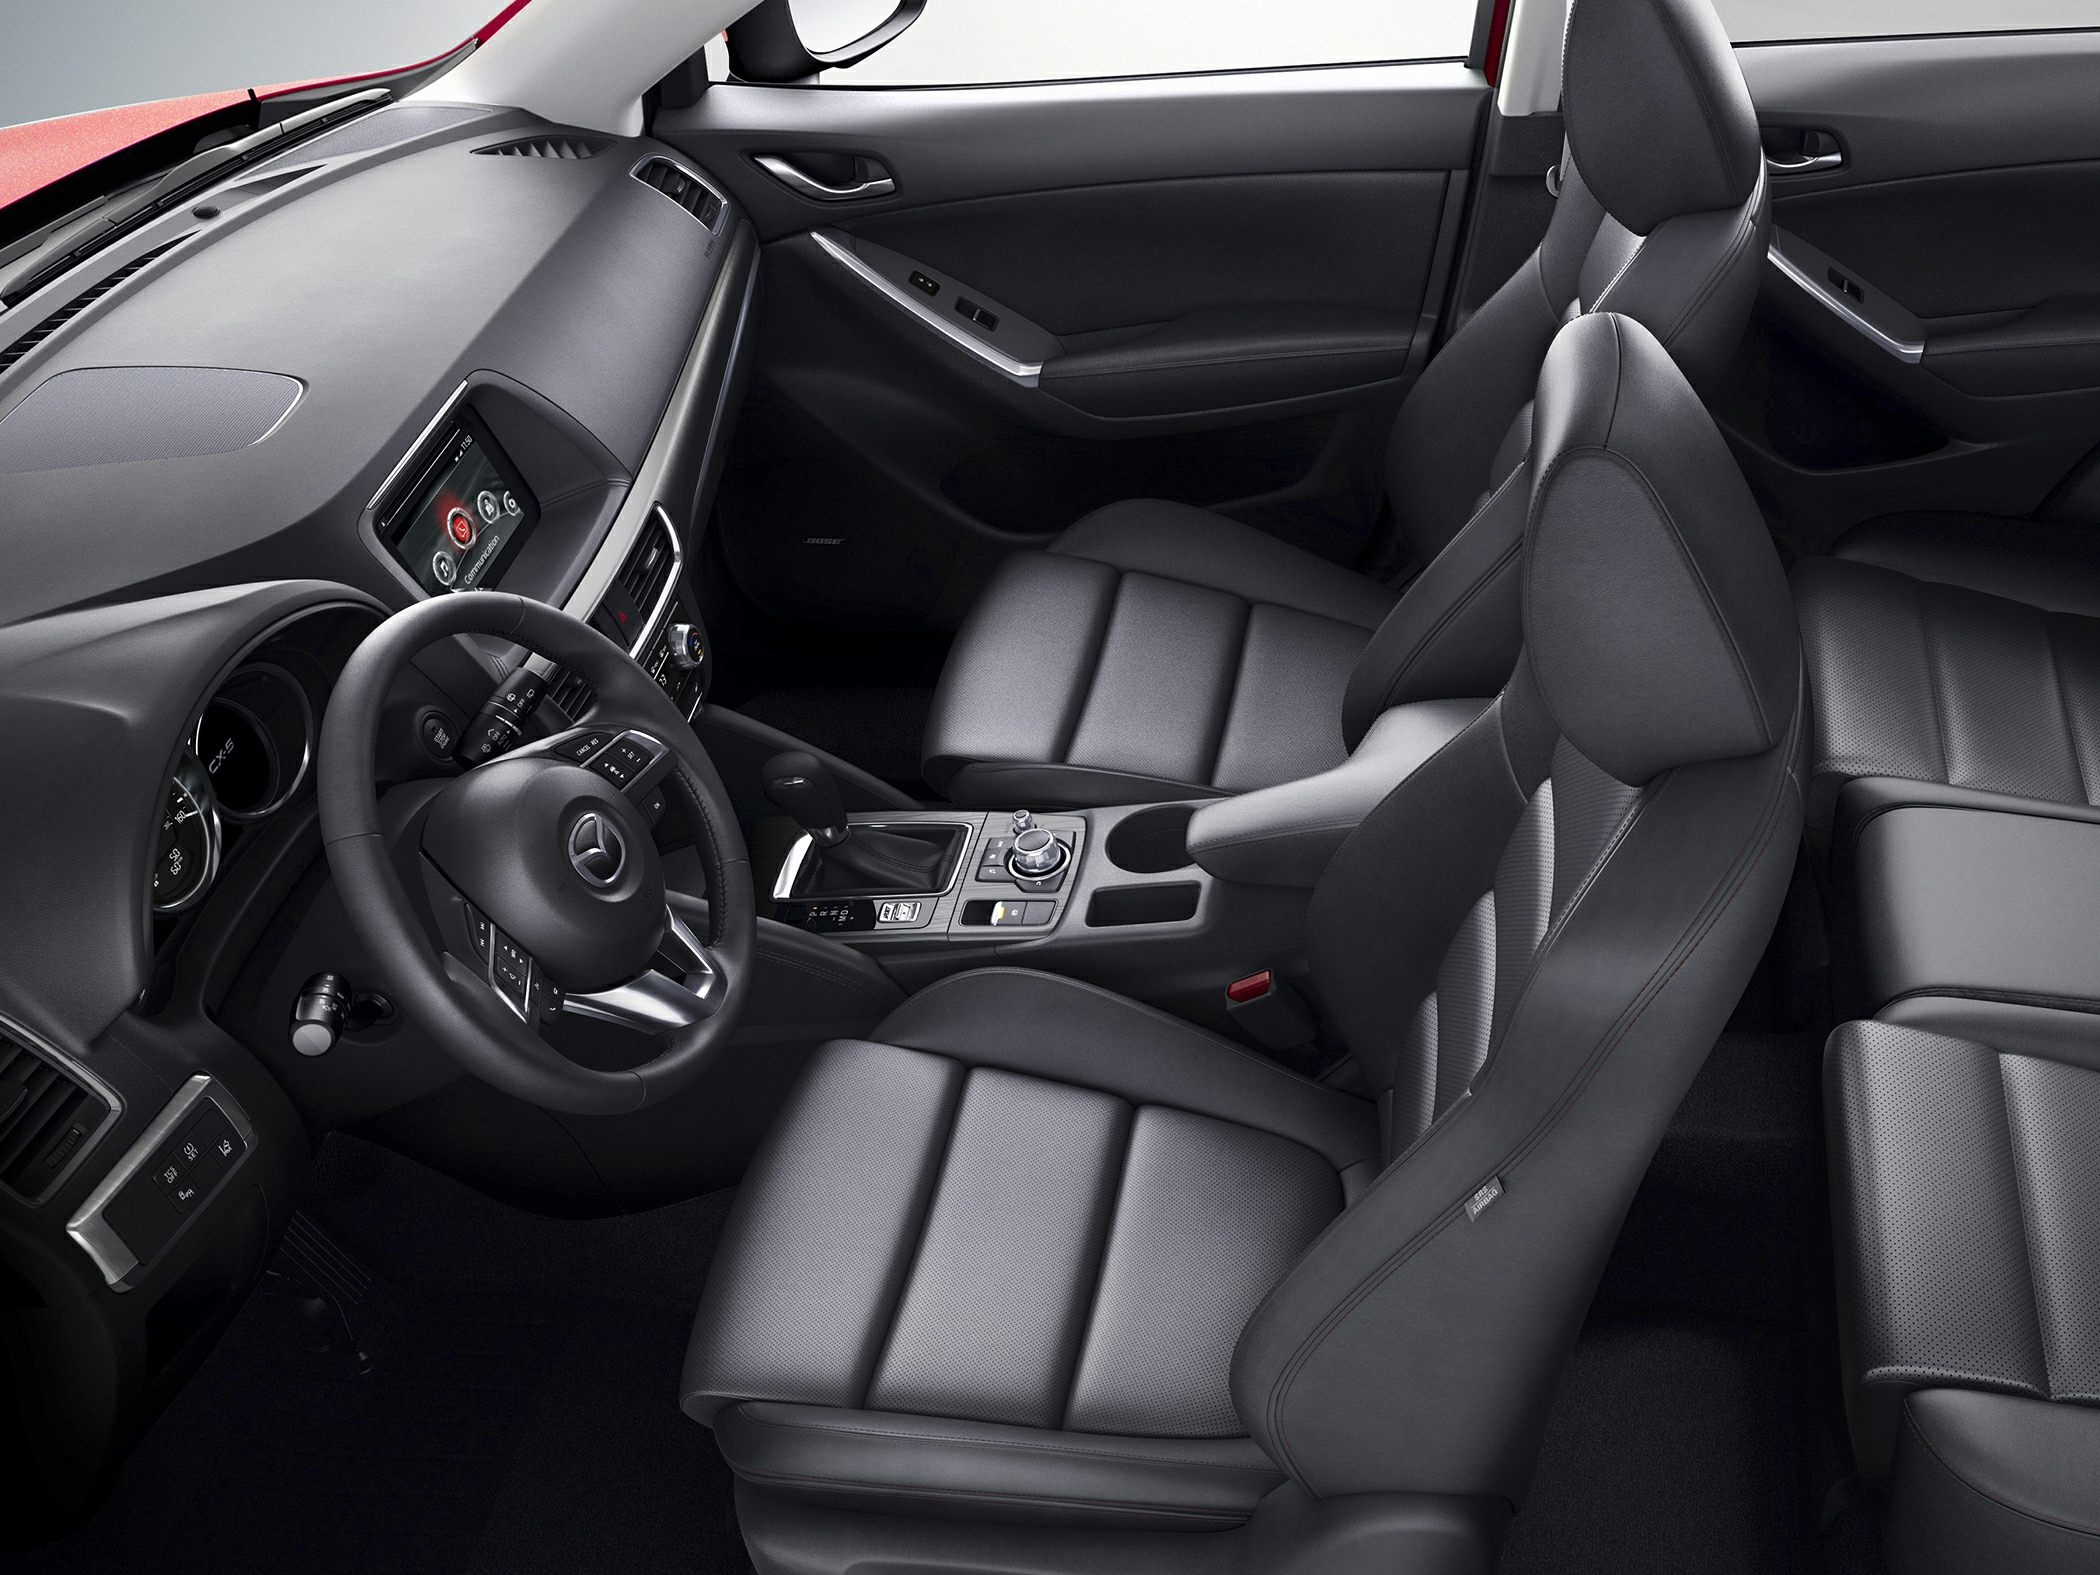 2016 Mazda CX 5 Specs Safety Rating & MPG CarsDirect